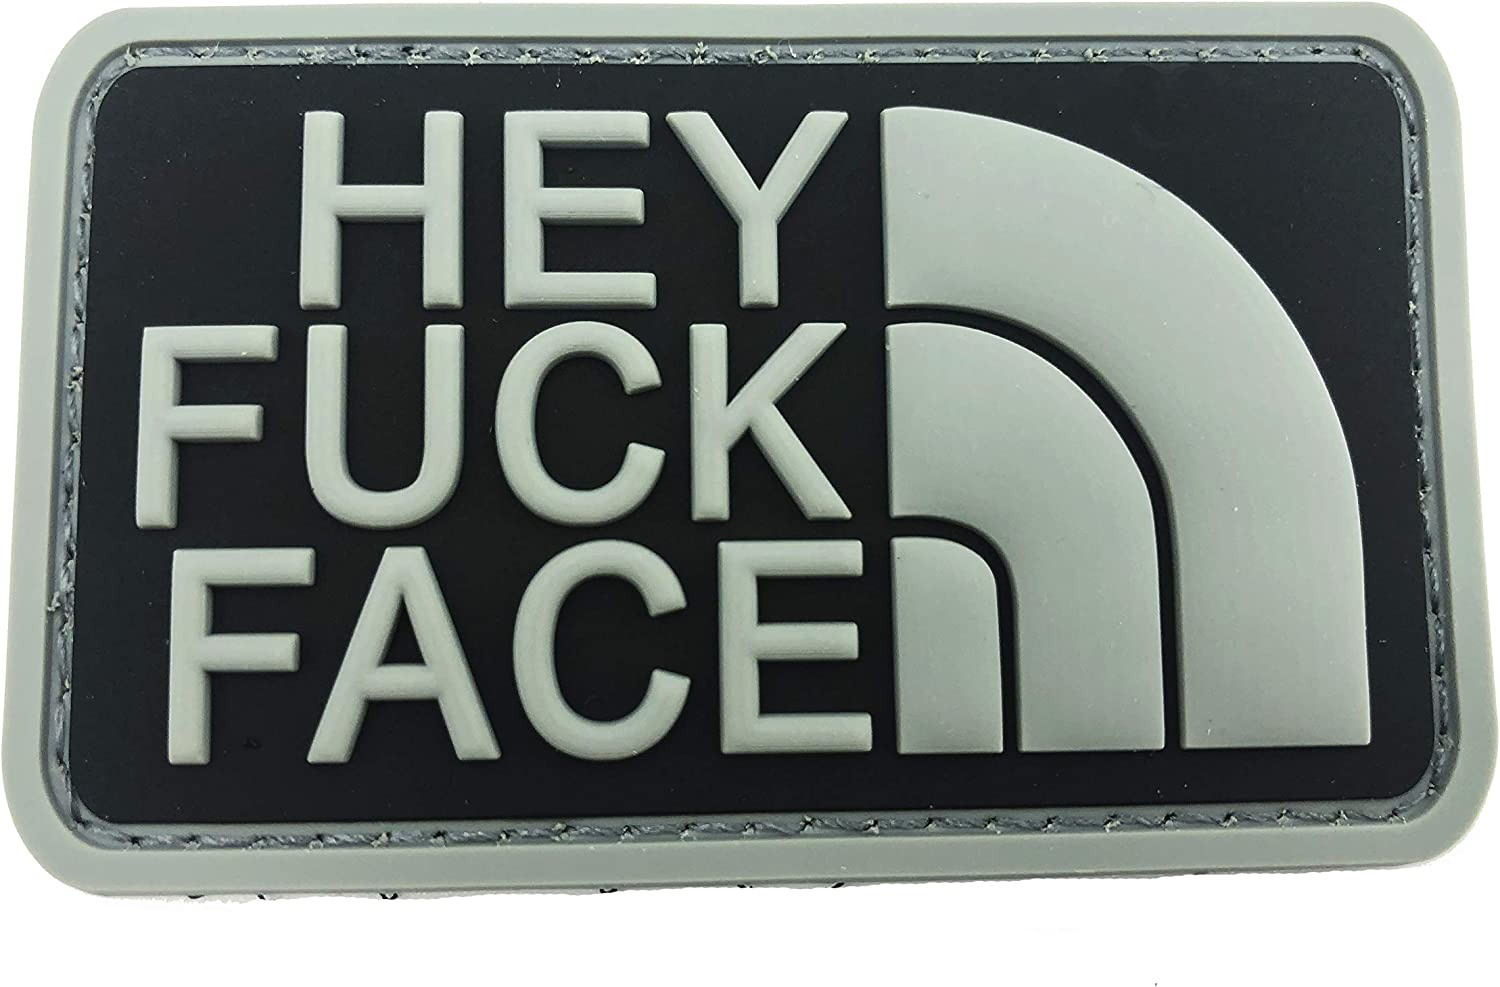 Hey F*** Face PVC Airsoft Paintball Patch Grey